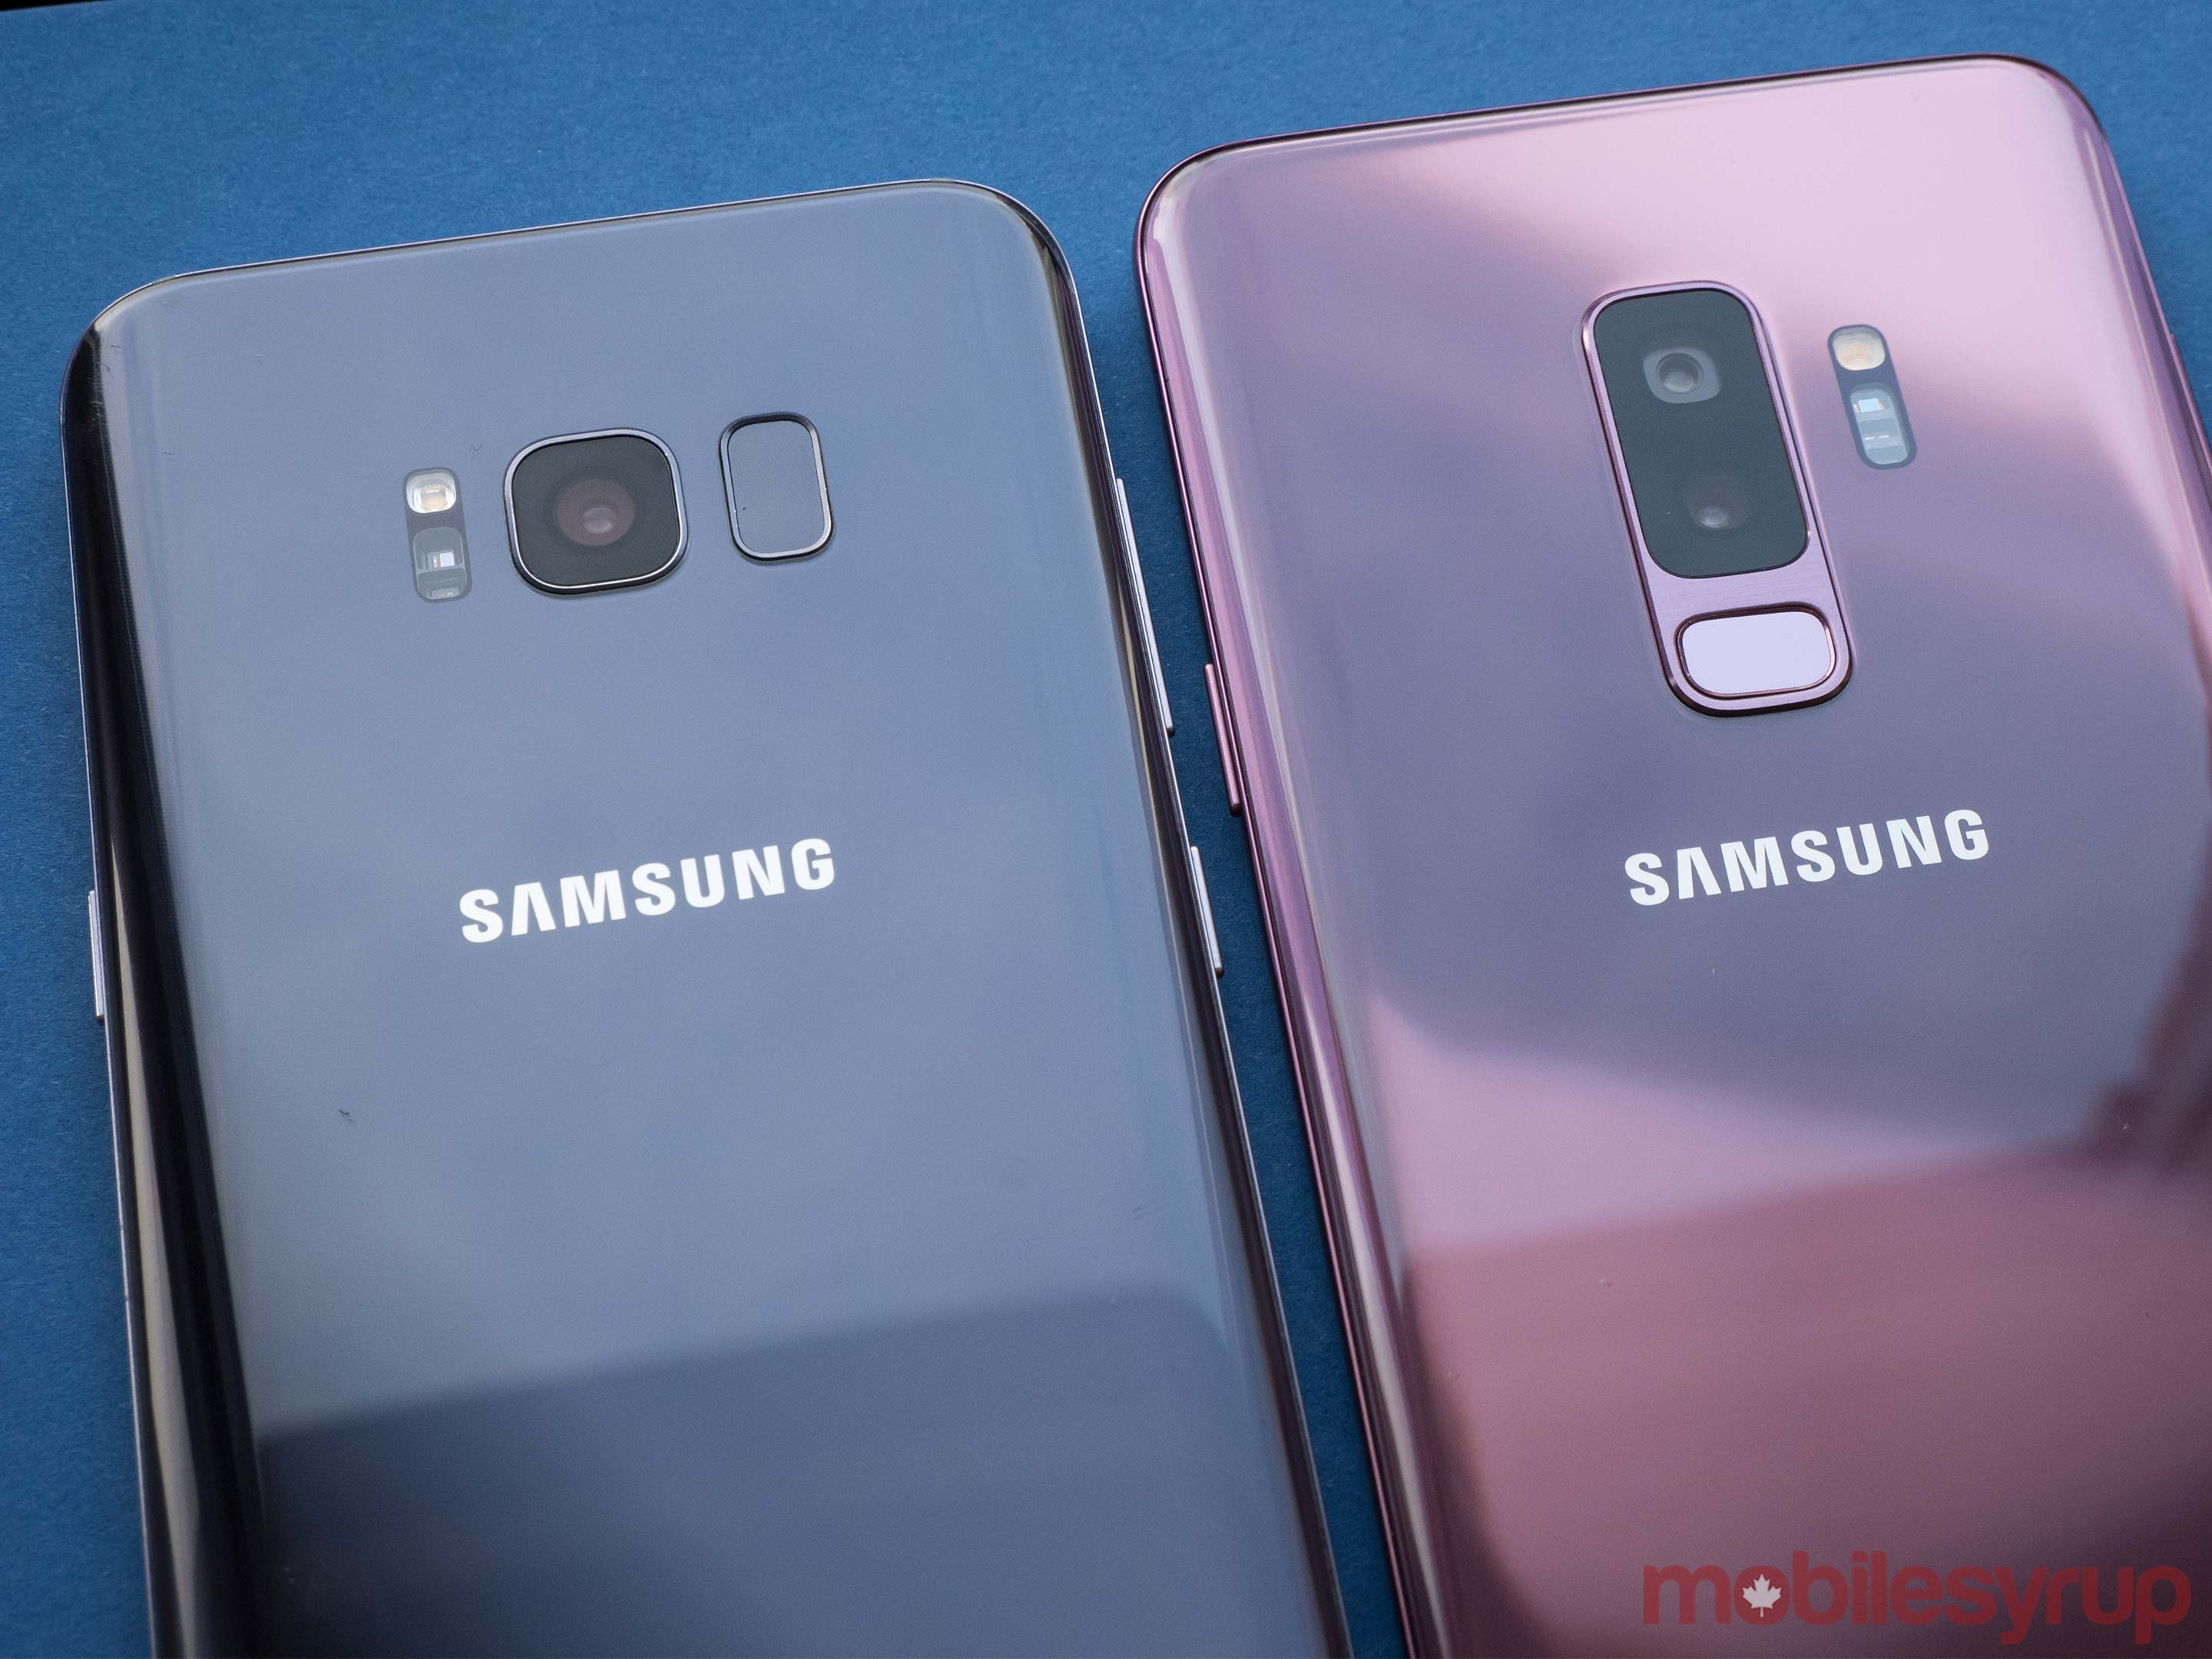 Side-by-side of the S9 and S8